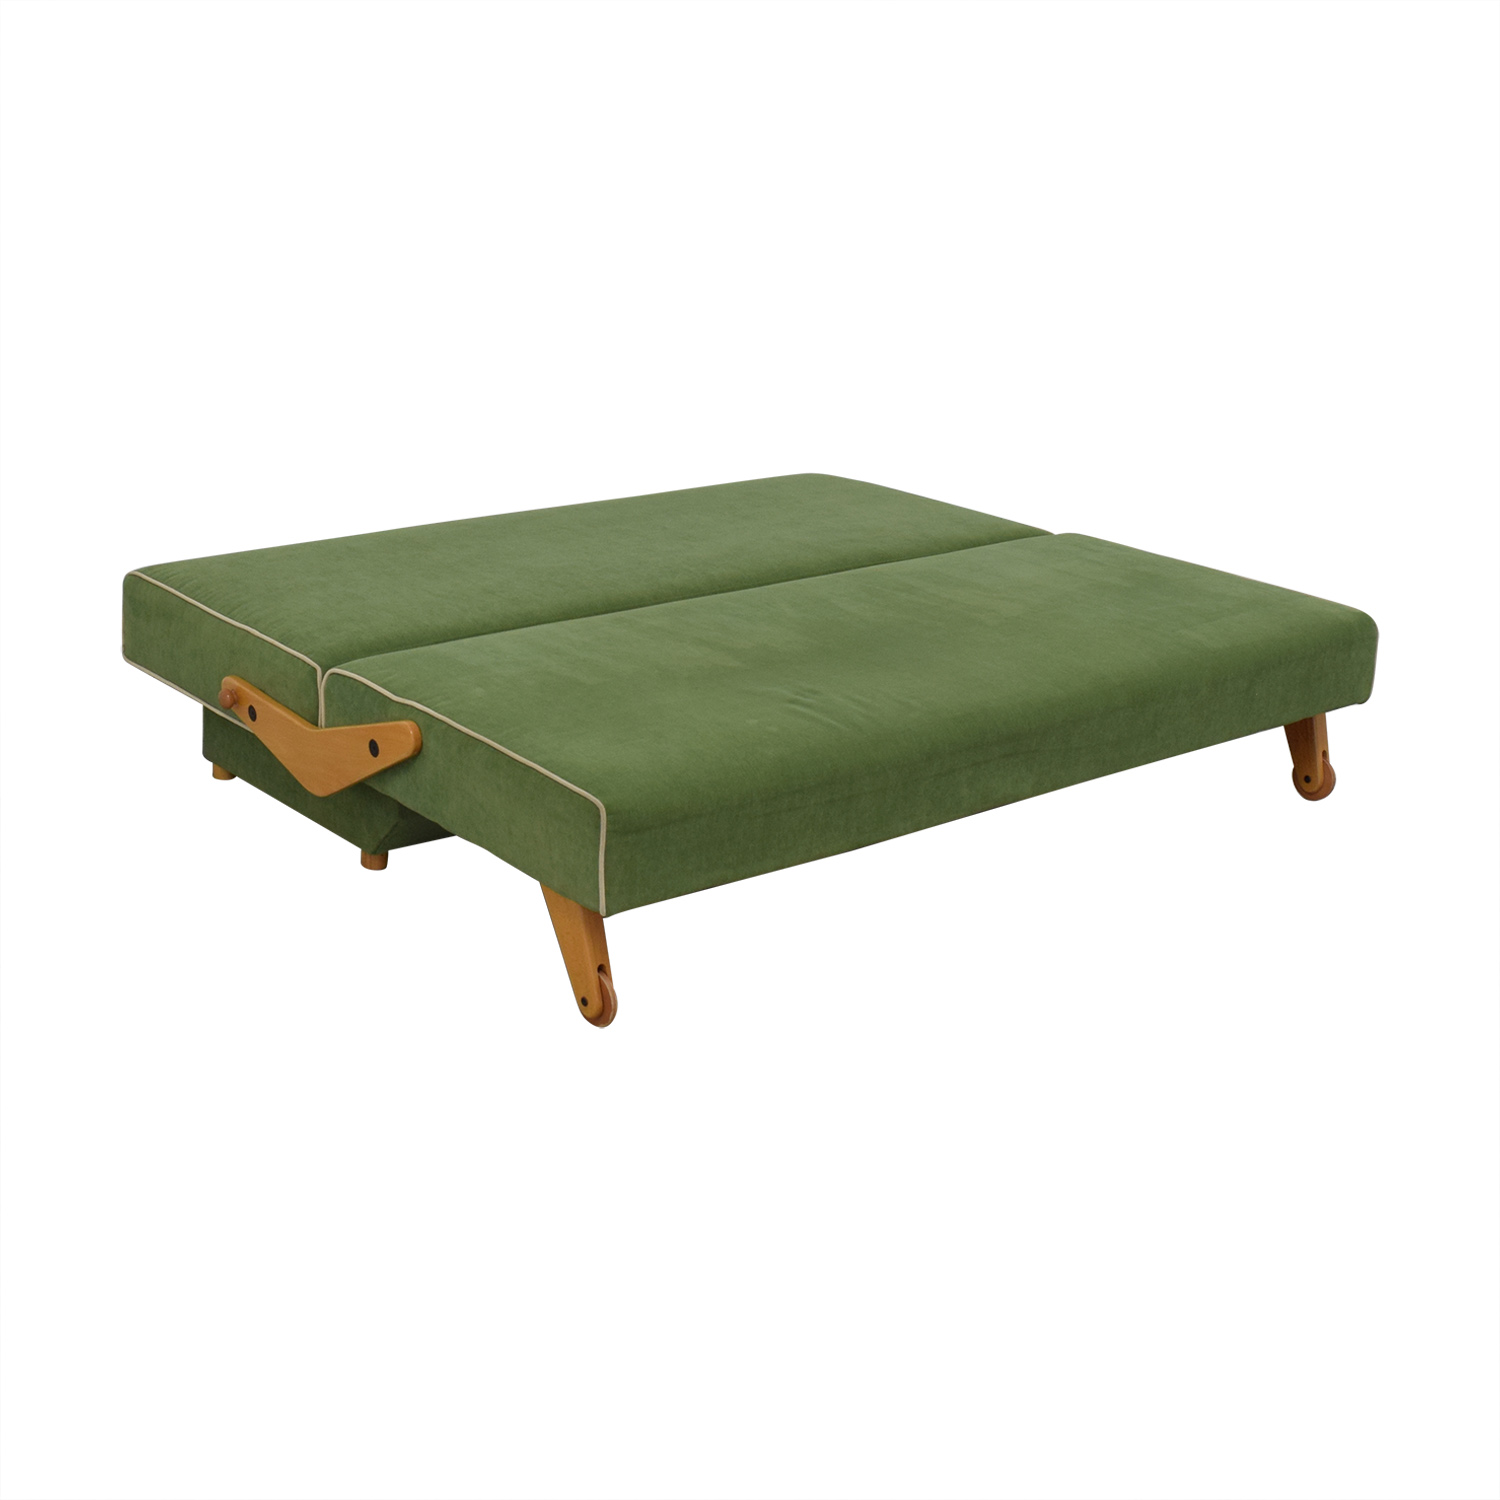 Reclining Sofa Bed with Storage